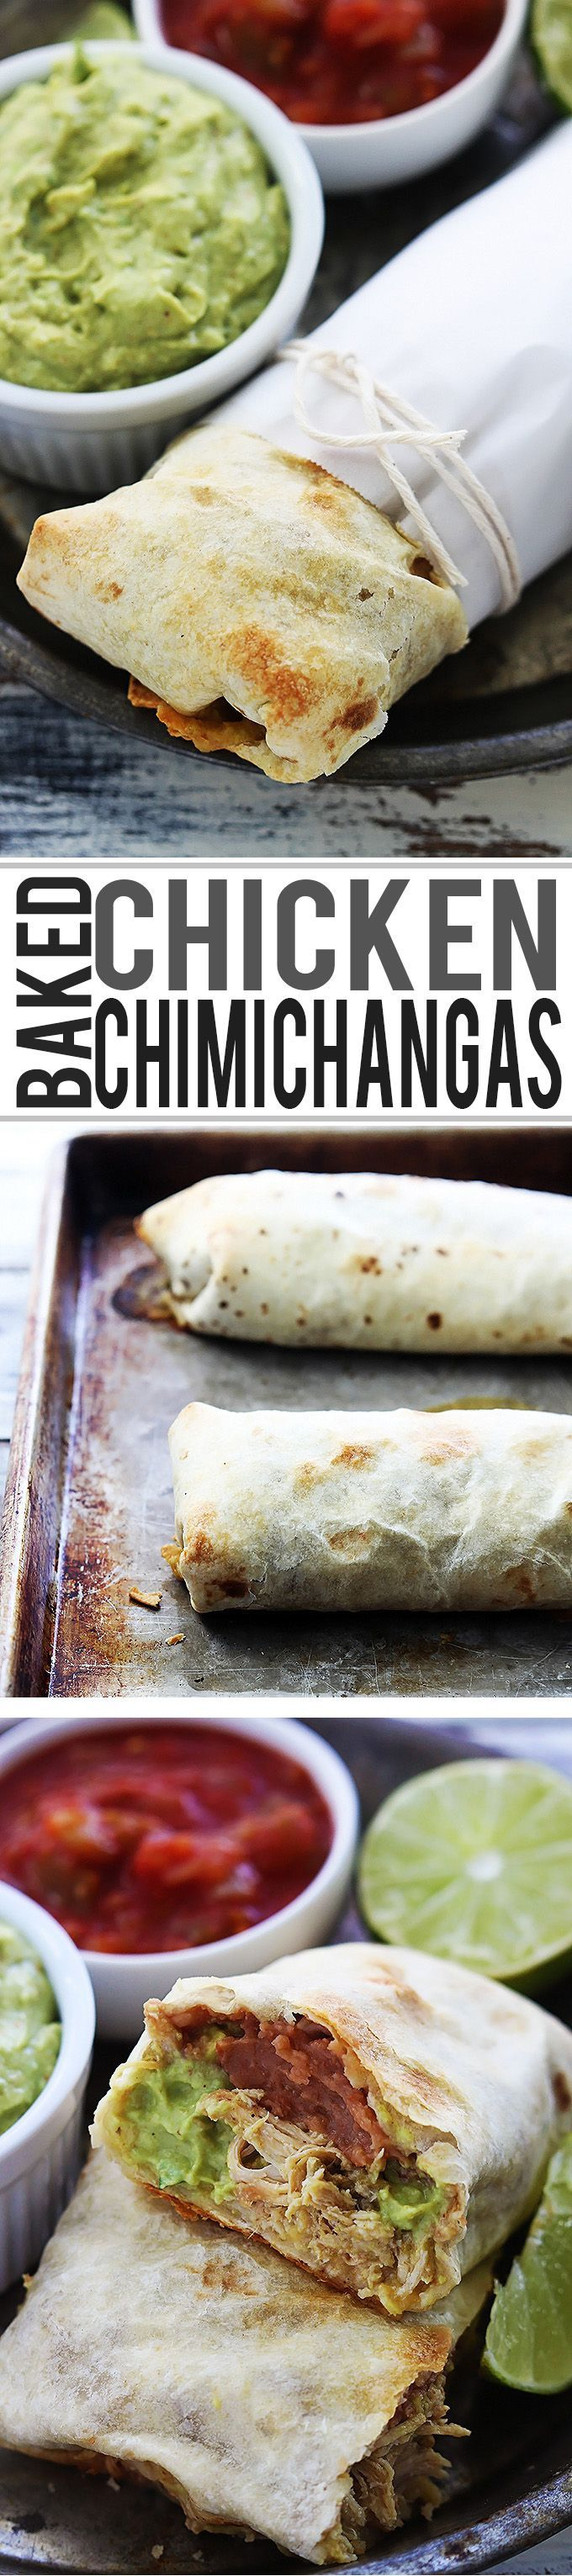 Baked Chicken Chimichangas - Crispy, healthy baked (not fried!)